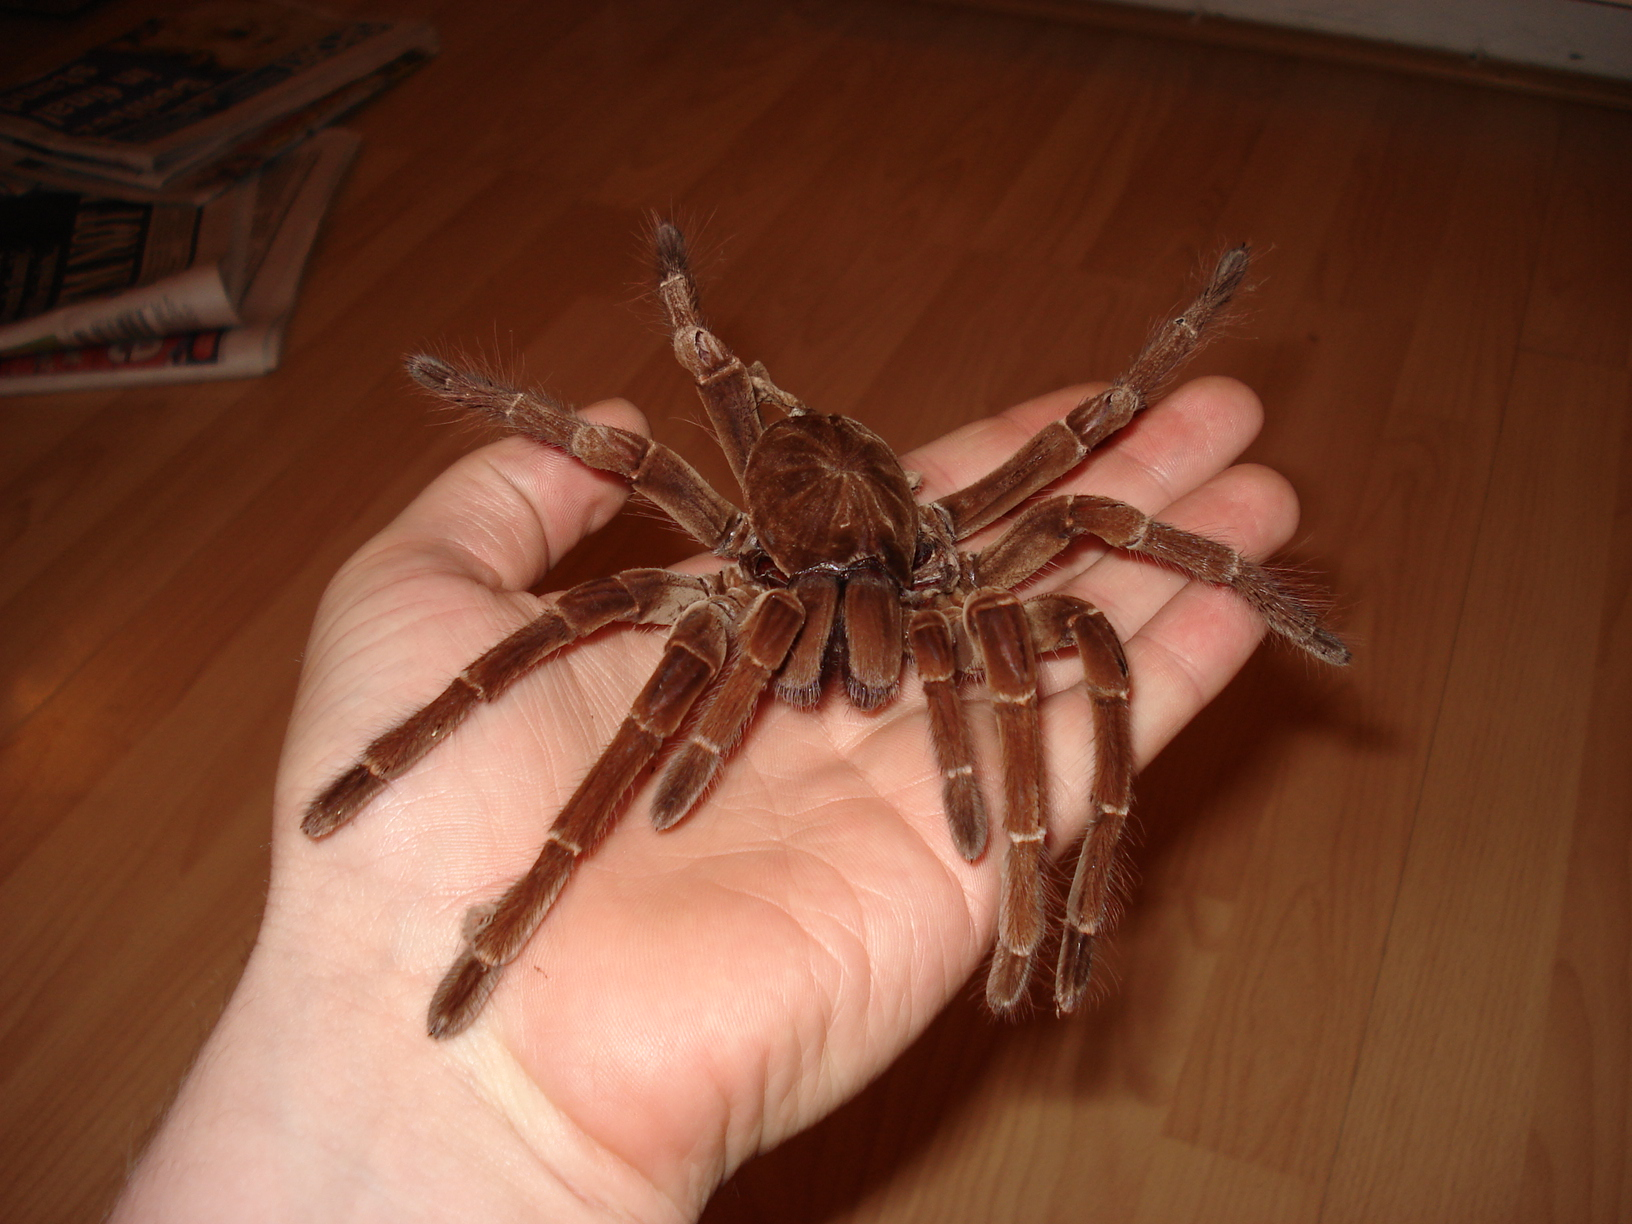 Afbeeldingsresultaat voor biggest spider in the world